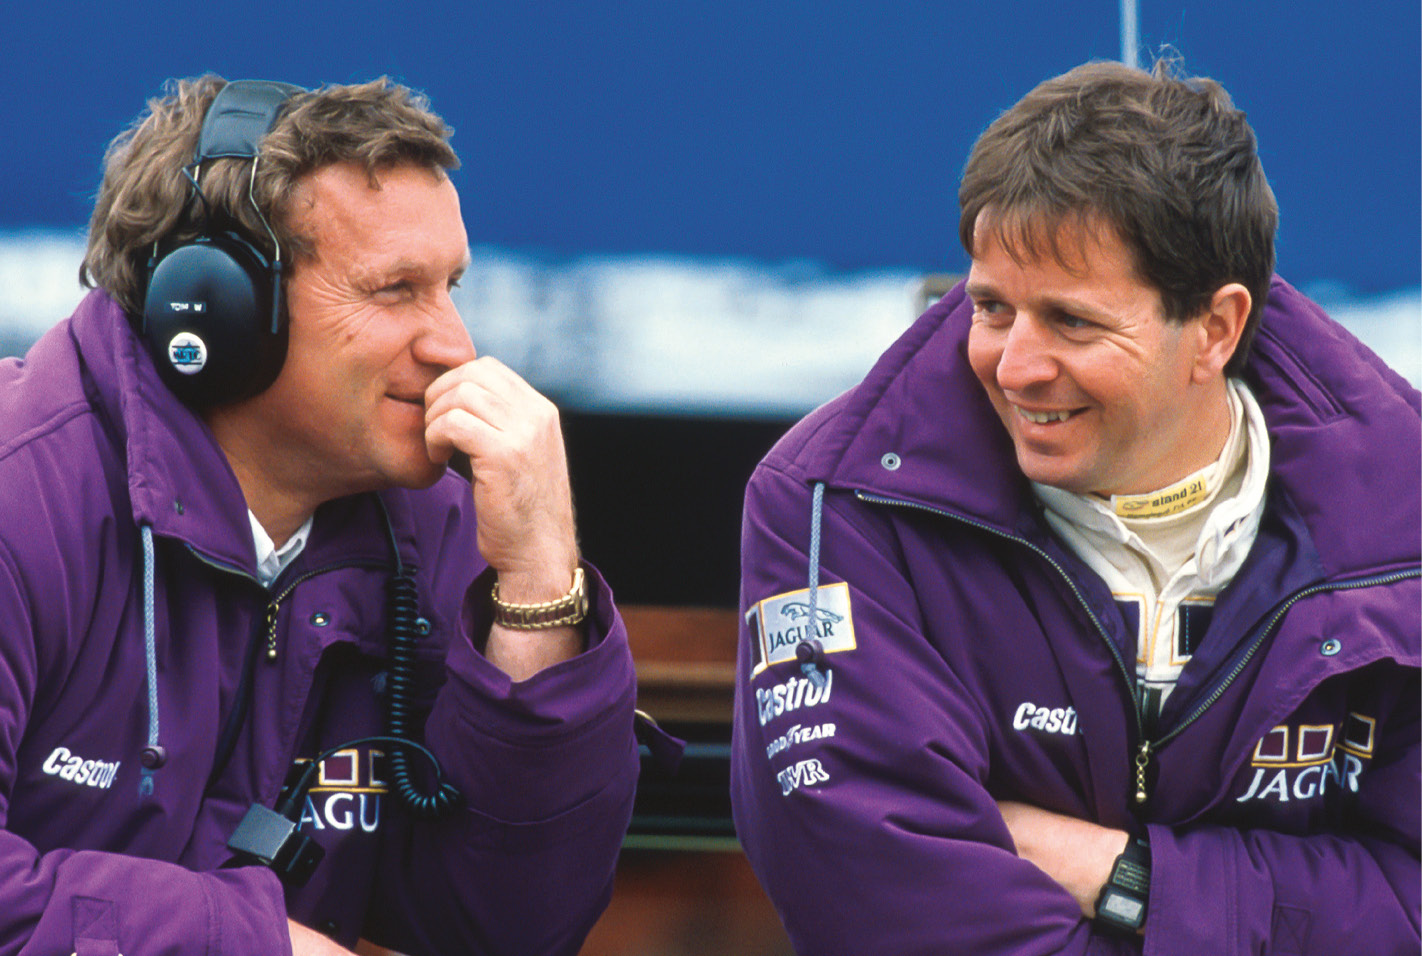 Tom Walkinshaw, left, was like a motor sport father figure to a young Brundle, right